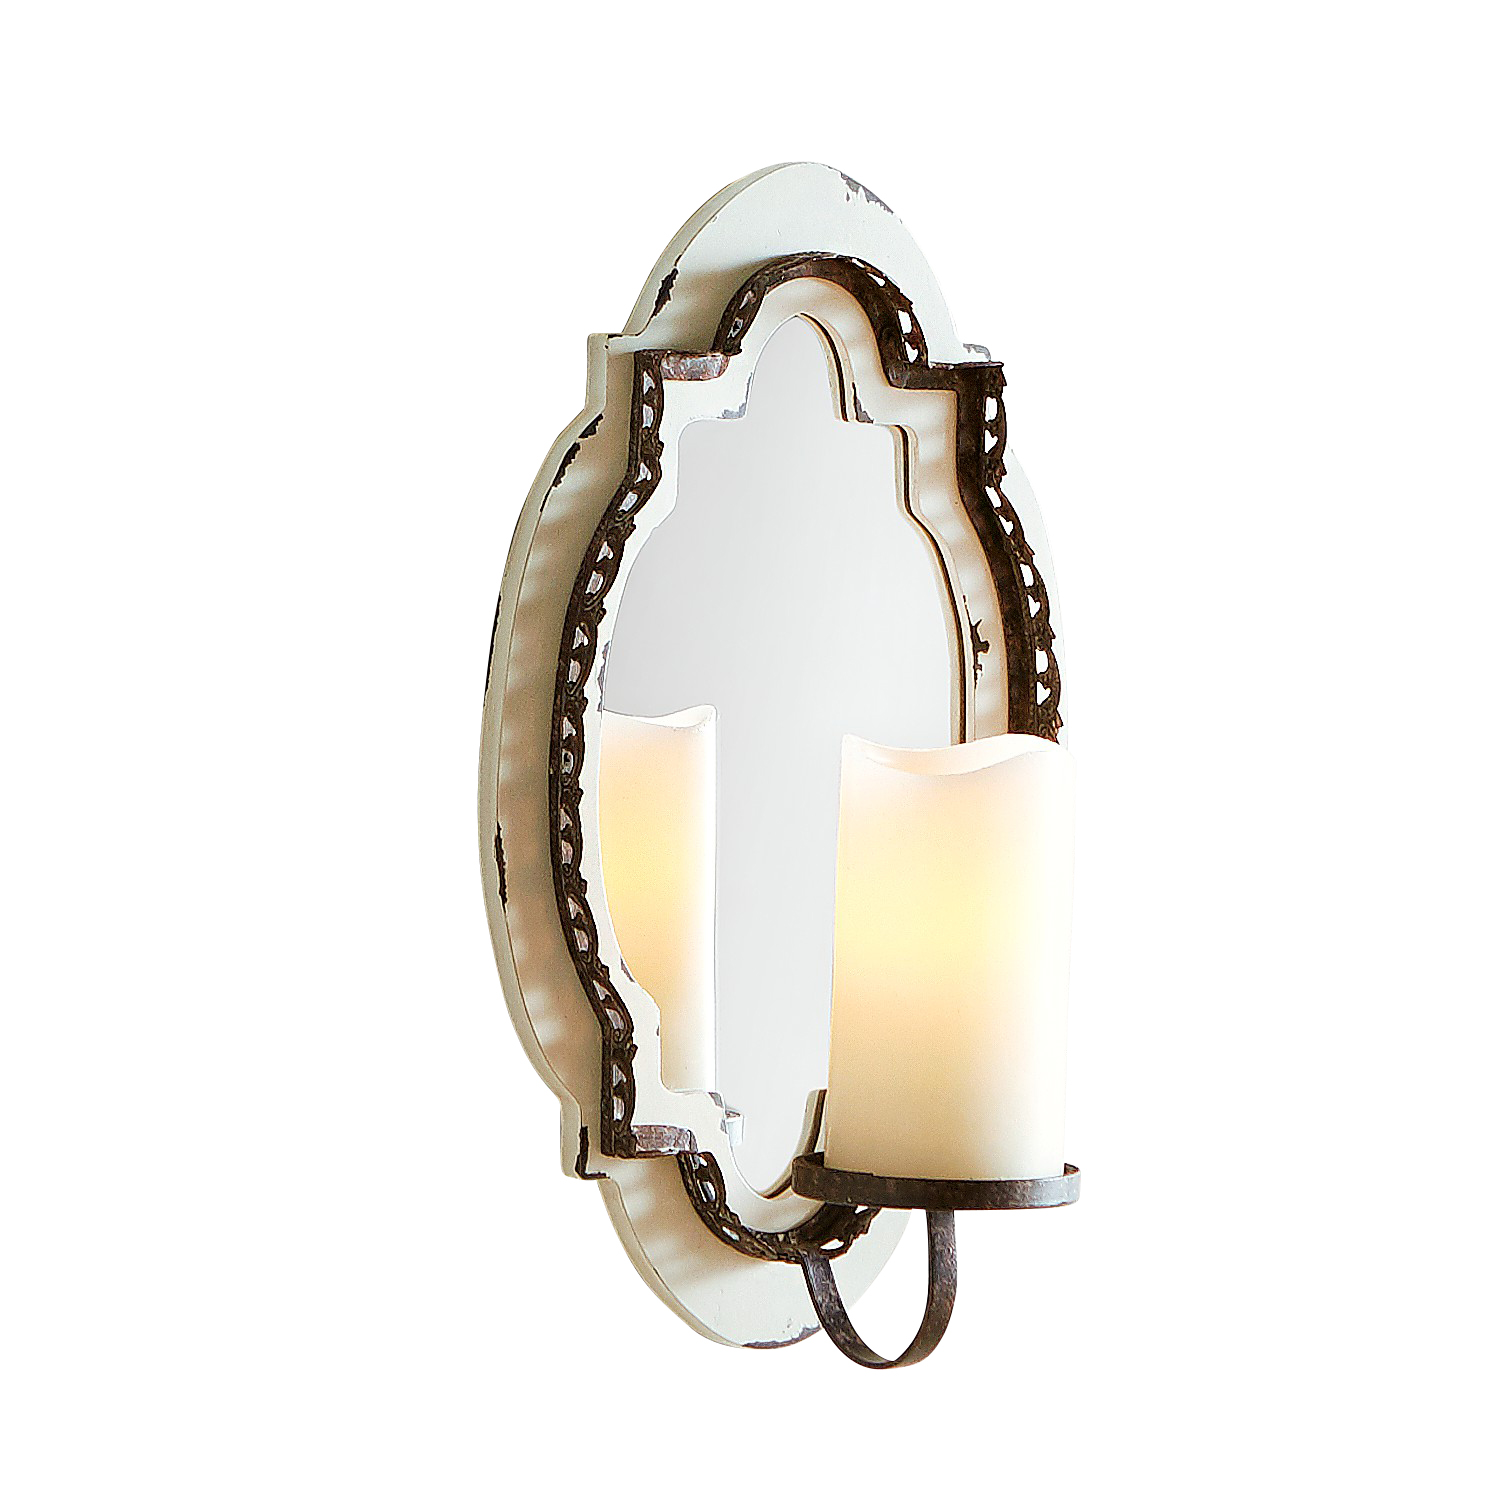 Wood & Mirror Pillar Candle Wall Sconce